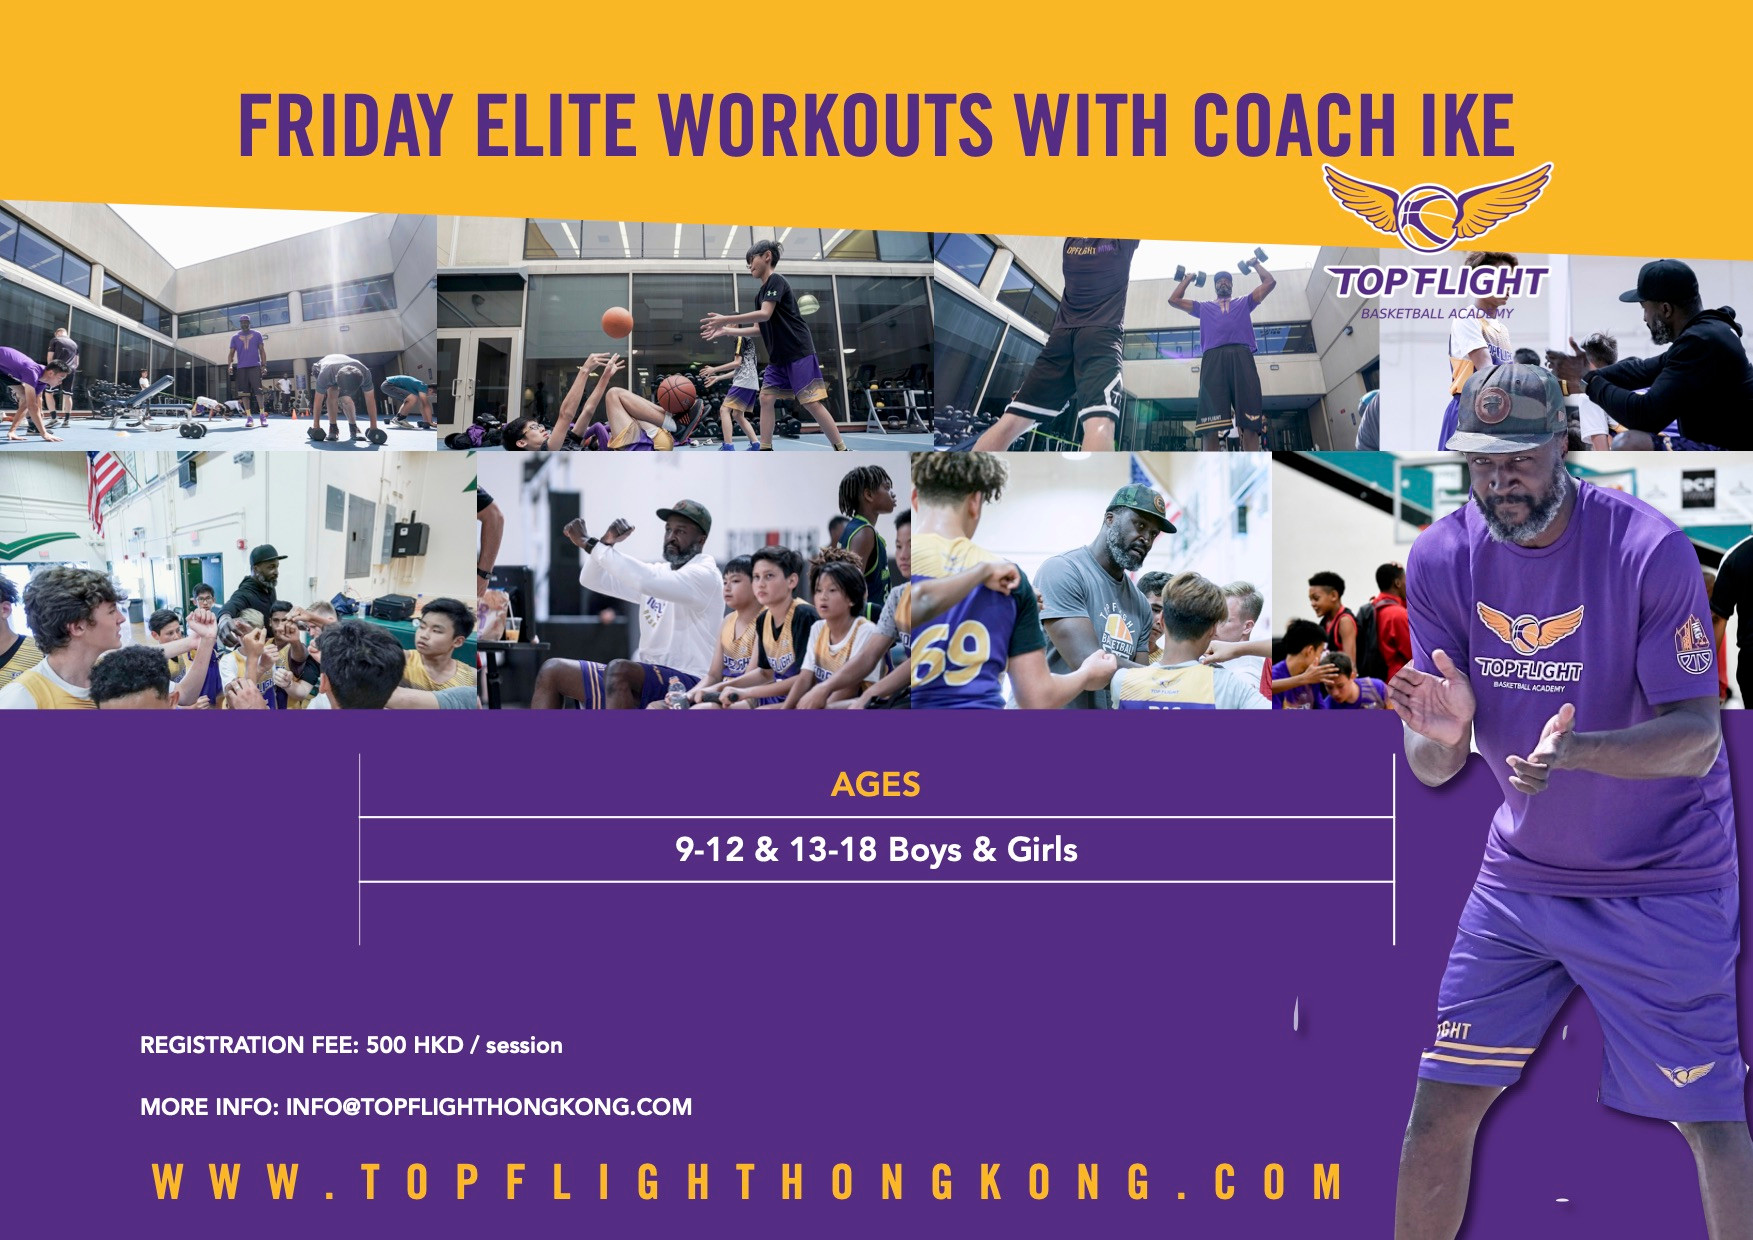 Friday Workout with Coach Ike